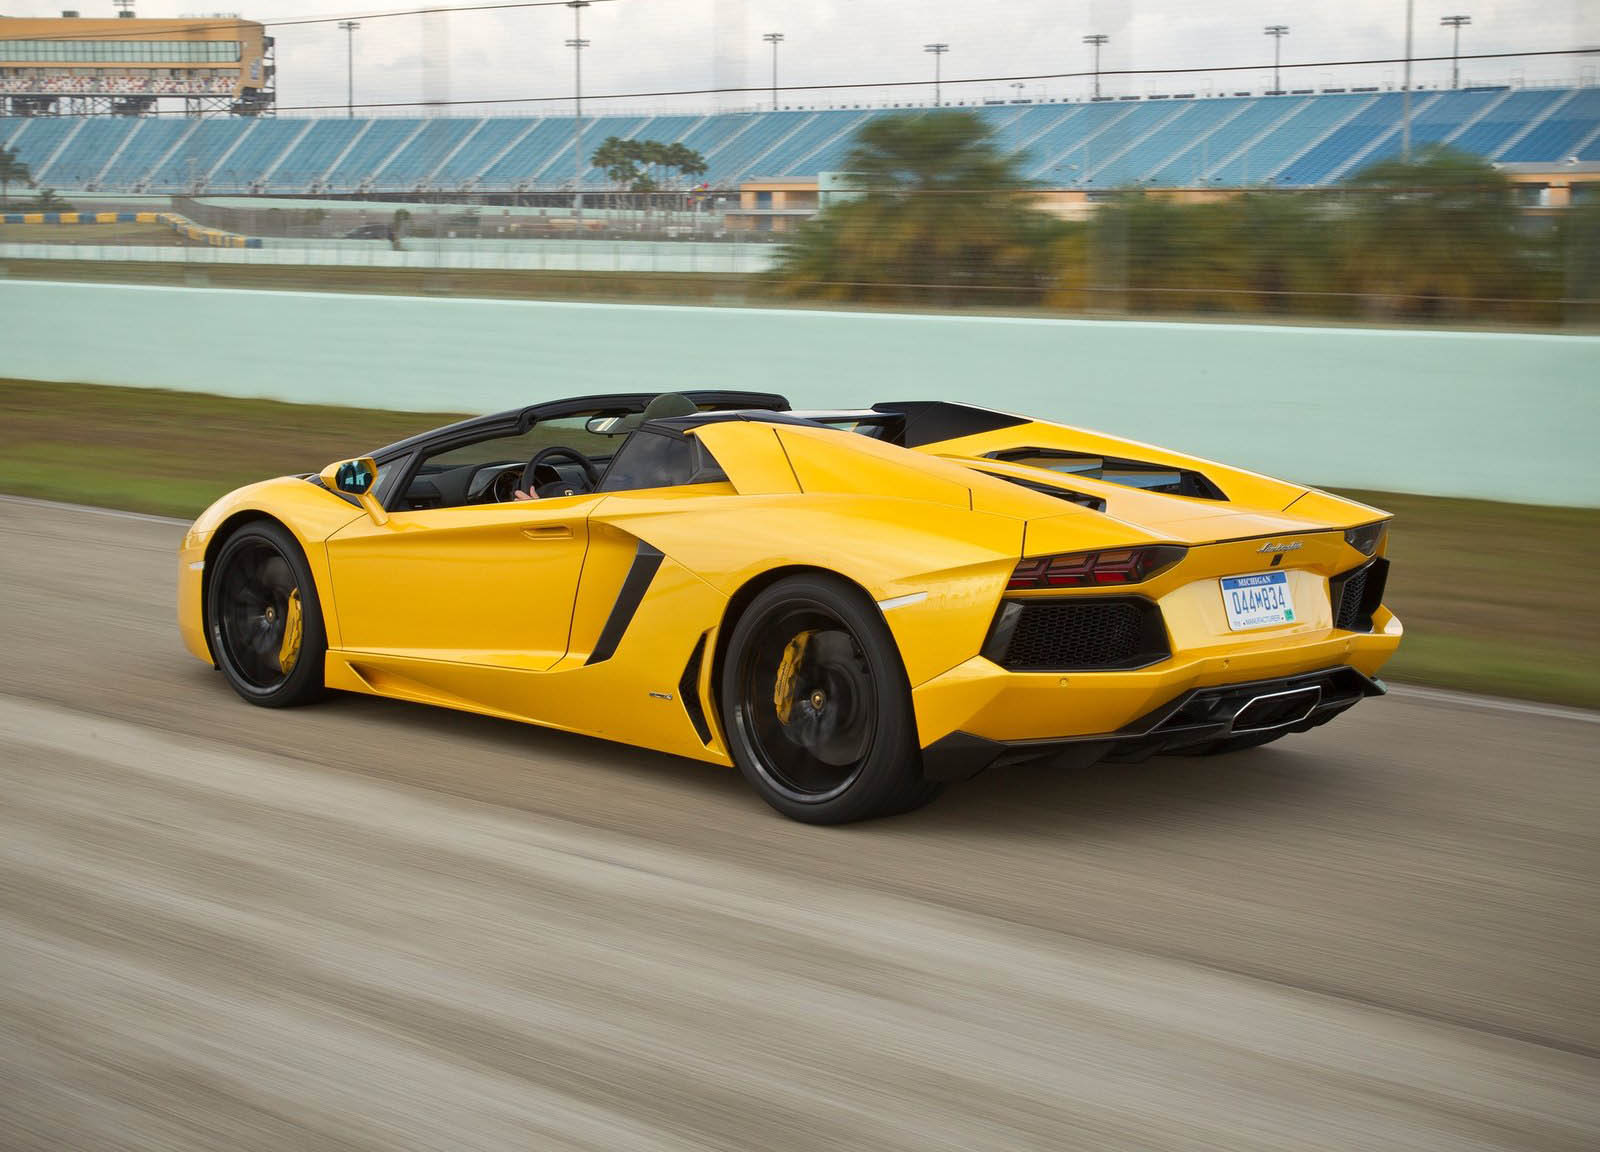 don 39 t overfill your lamborghini aventador or it could catch fire. Black Bedroom Furniture Sets. Home Design Ideas